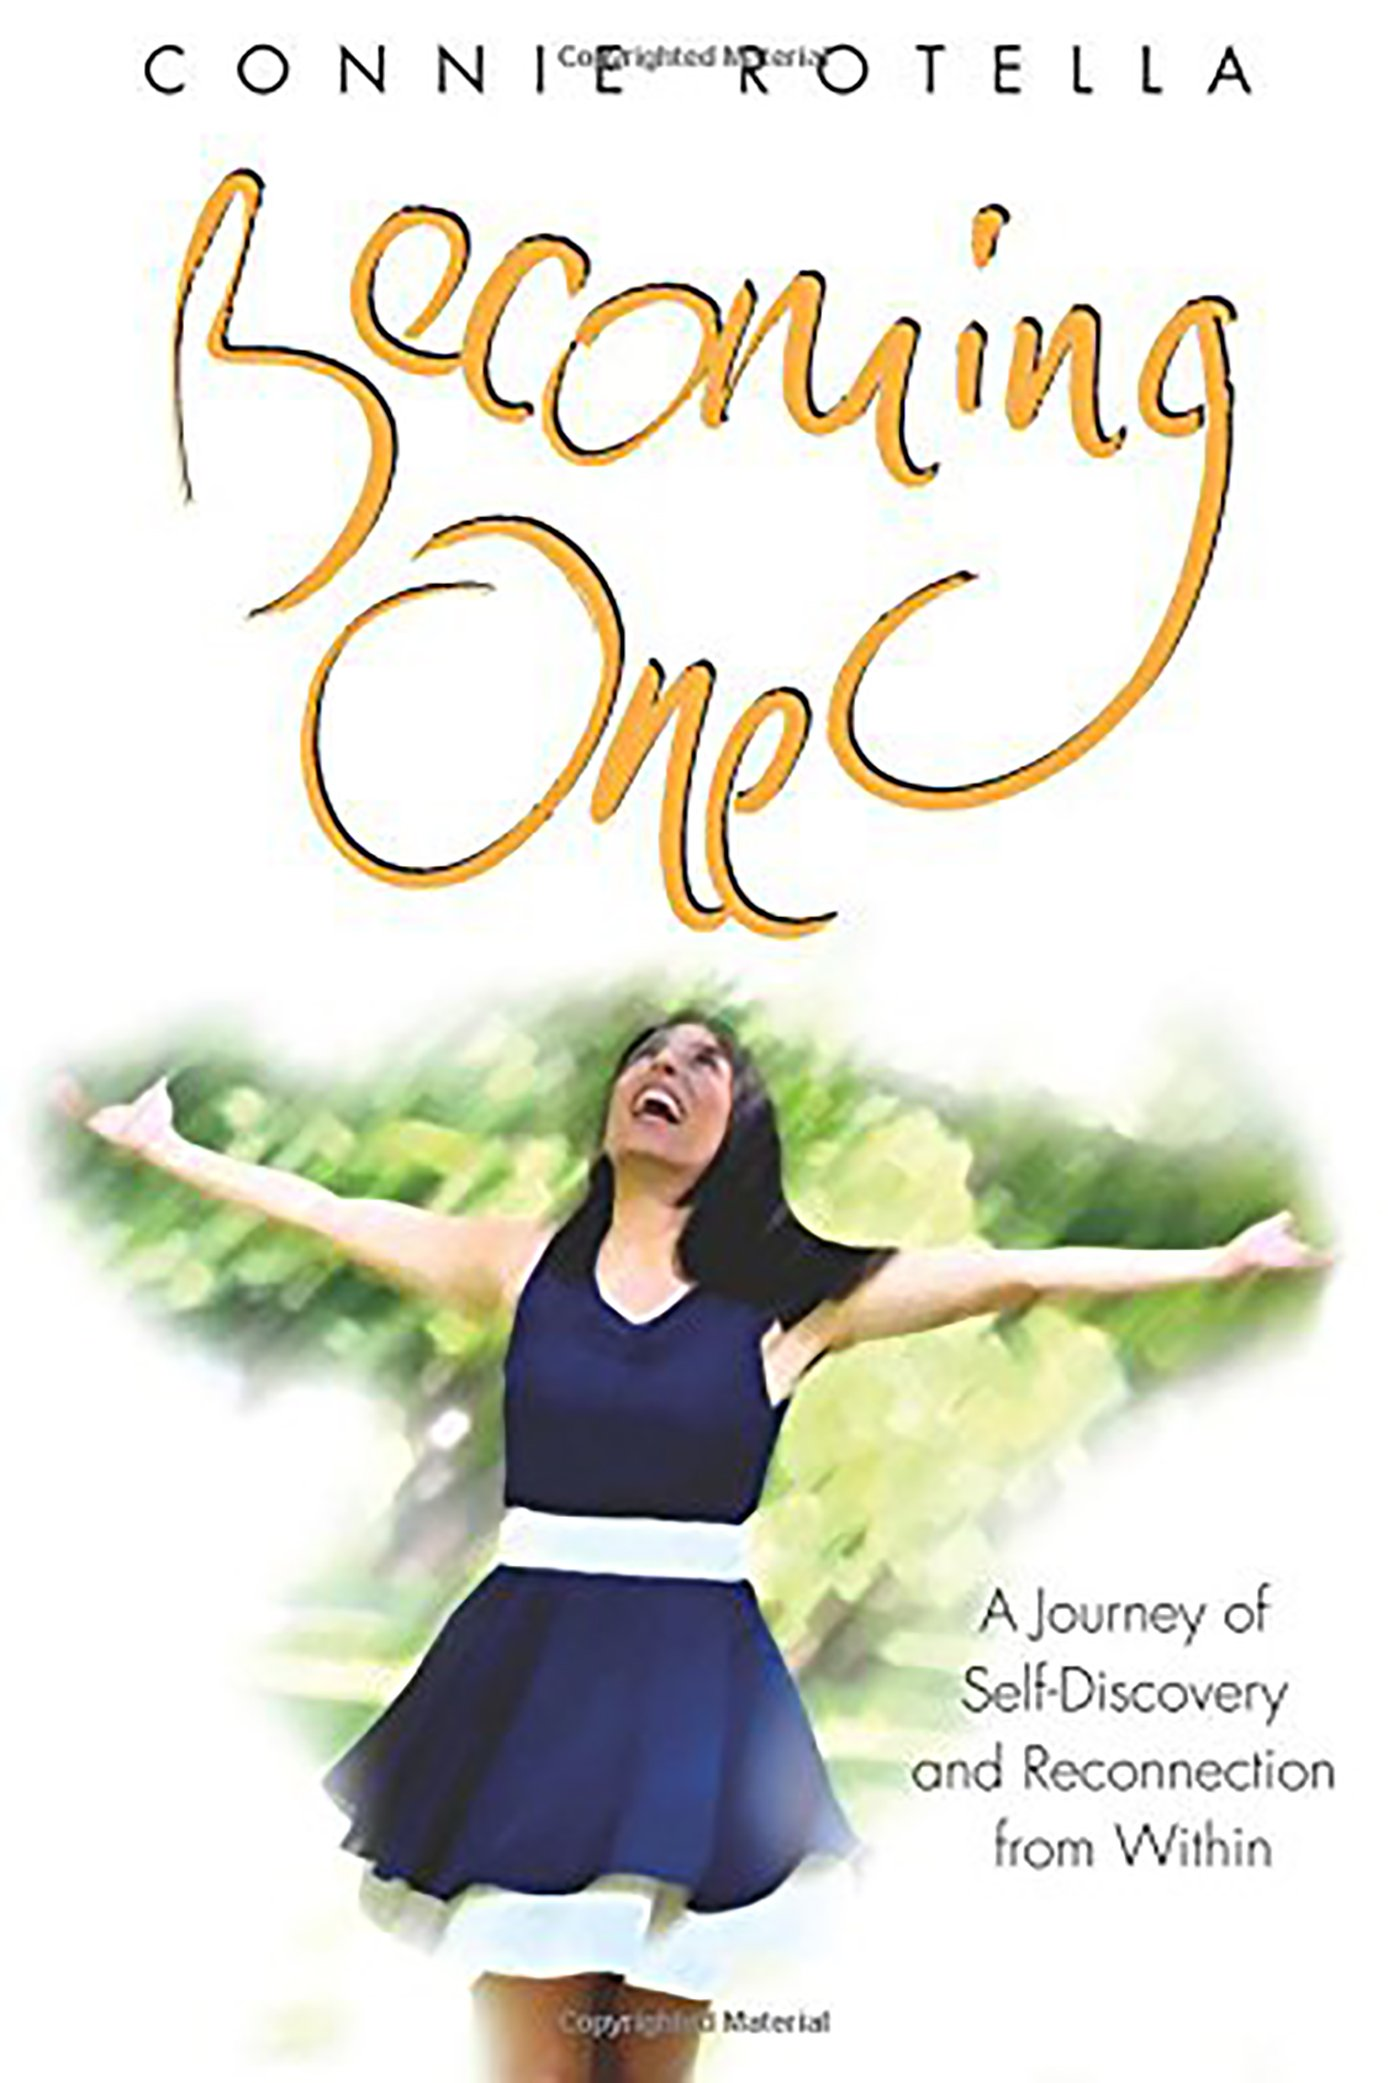 Connie Rotella - Becoming One